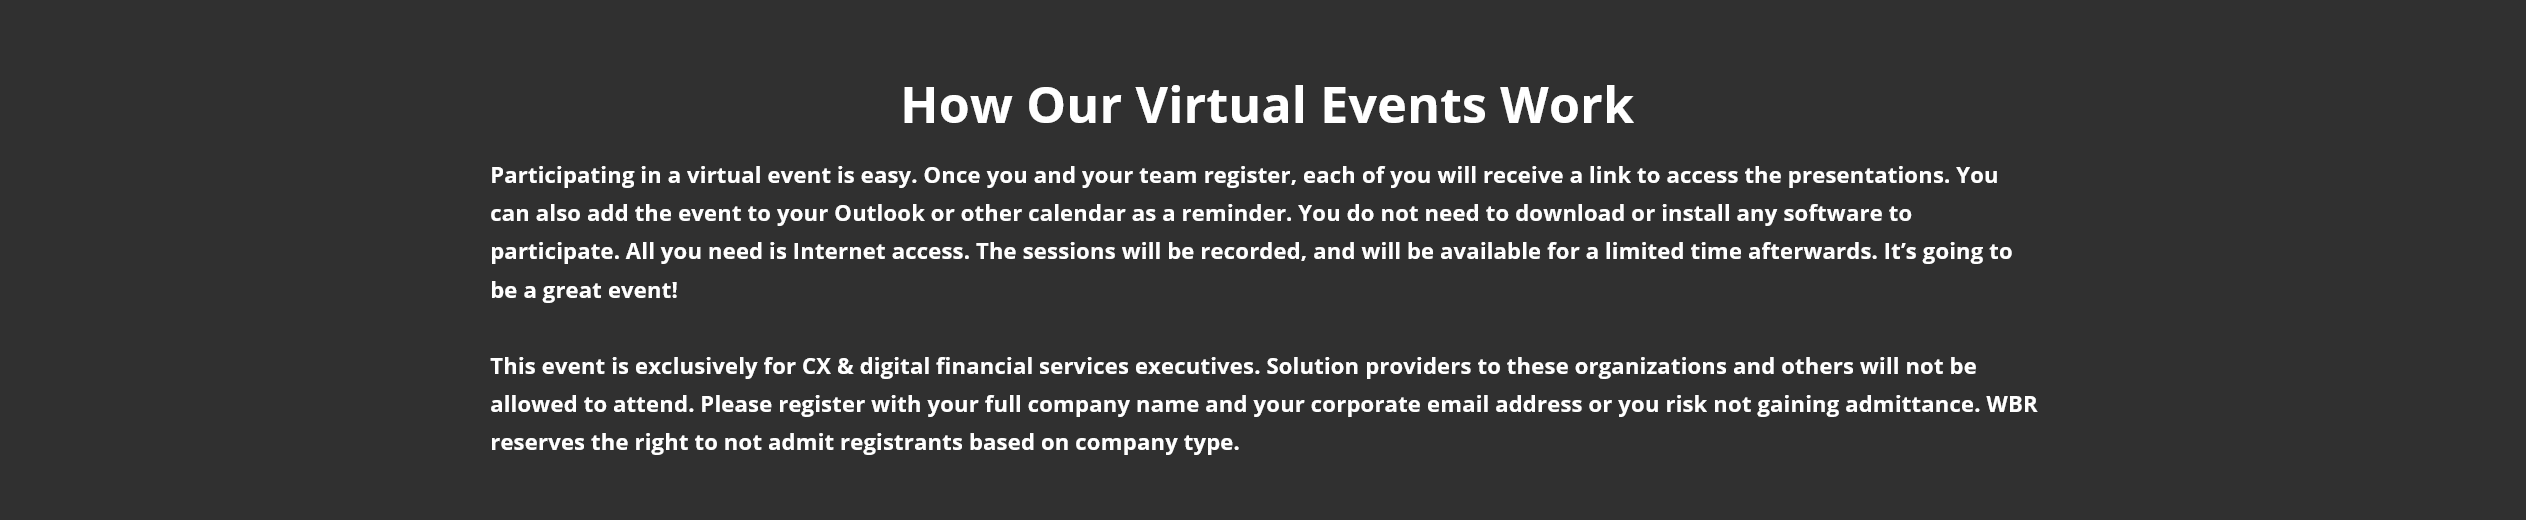 The Leading Invite-Only Virtual Event For Senior CX & Digital Financial Services Executives -TechProspect The Leading Invite-Only Virtual Event For Senior CX & Digital Financial Services Executives -TechProspect